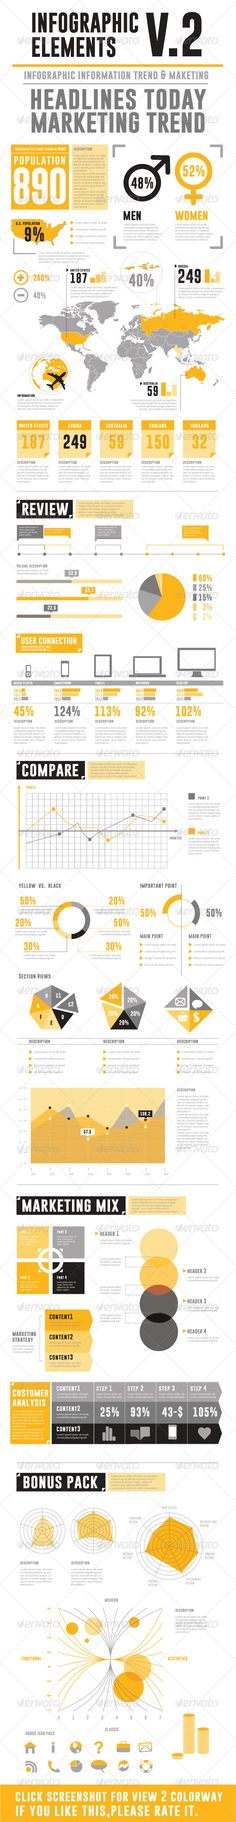 Infographic Tutorial infographic tutorial illustrator cs2 download : Speech Infographic | Infographic, Infographic Templates and ...